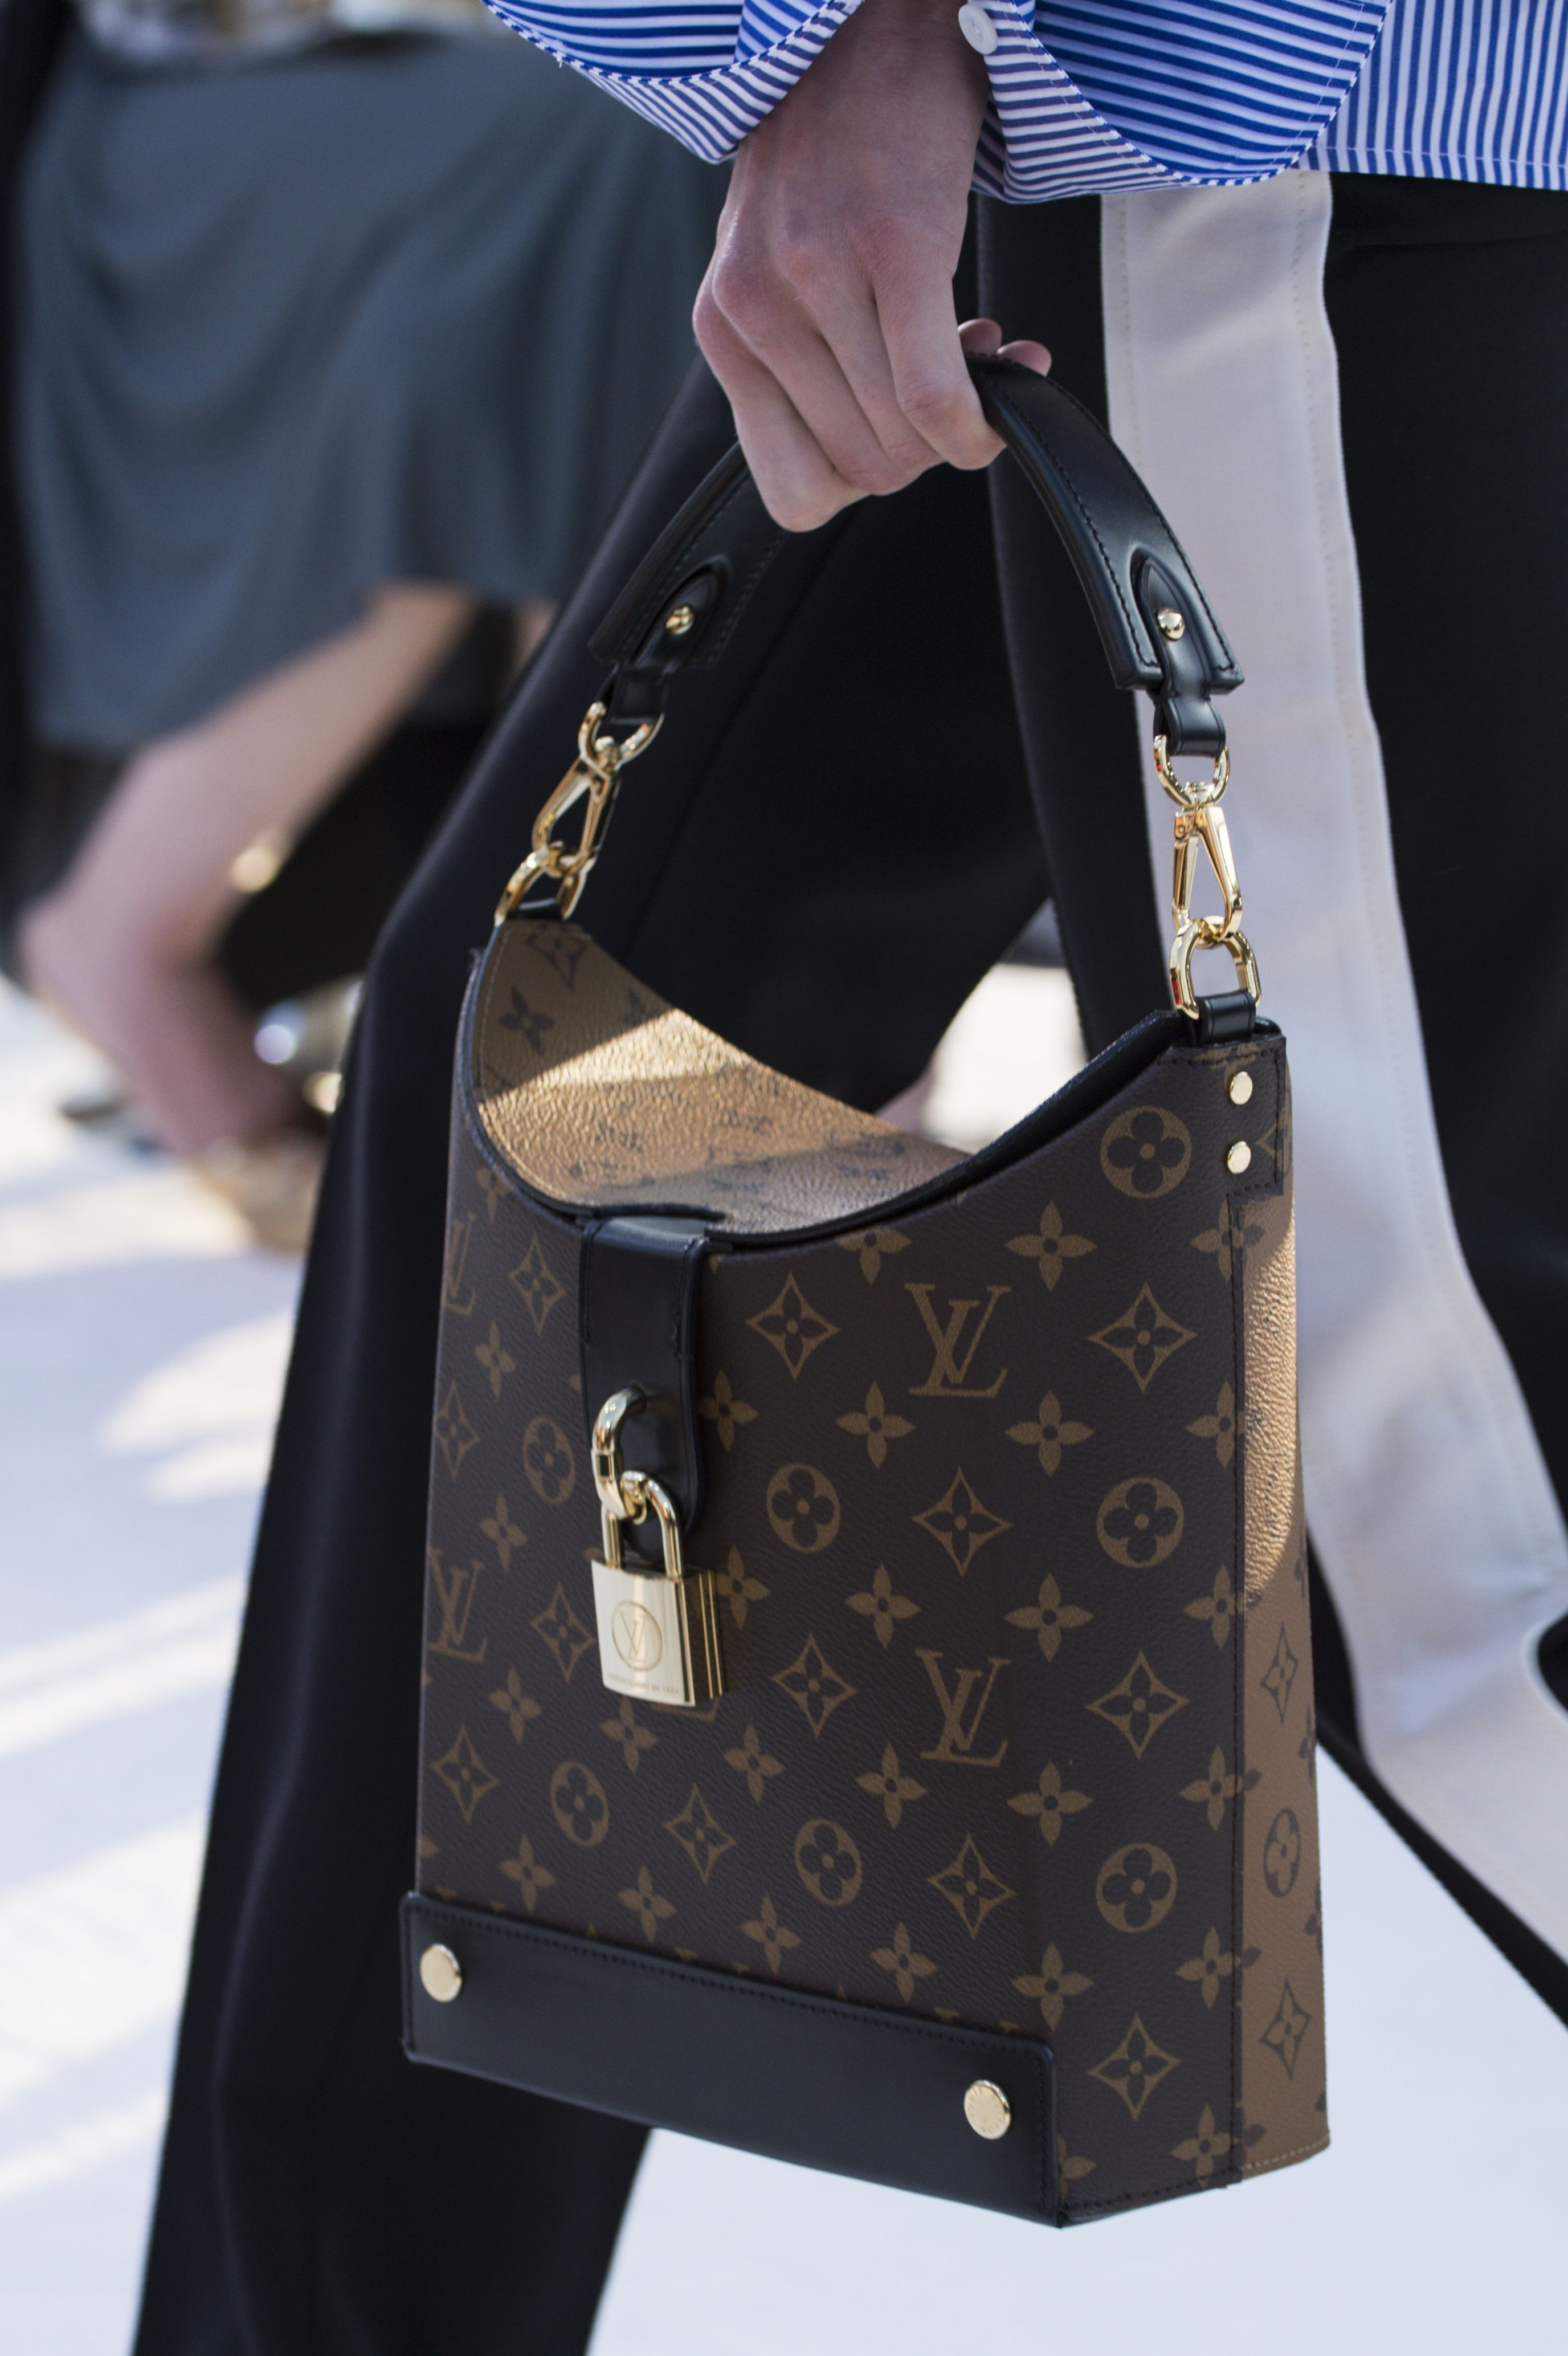 A closer look at a bag from the Louis Vuitton Cruise 2018 ...